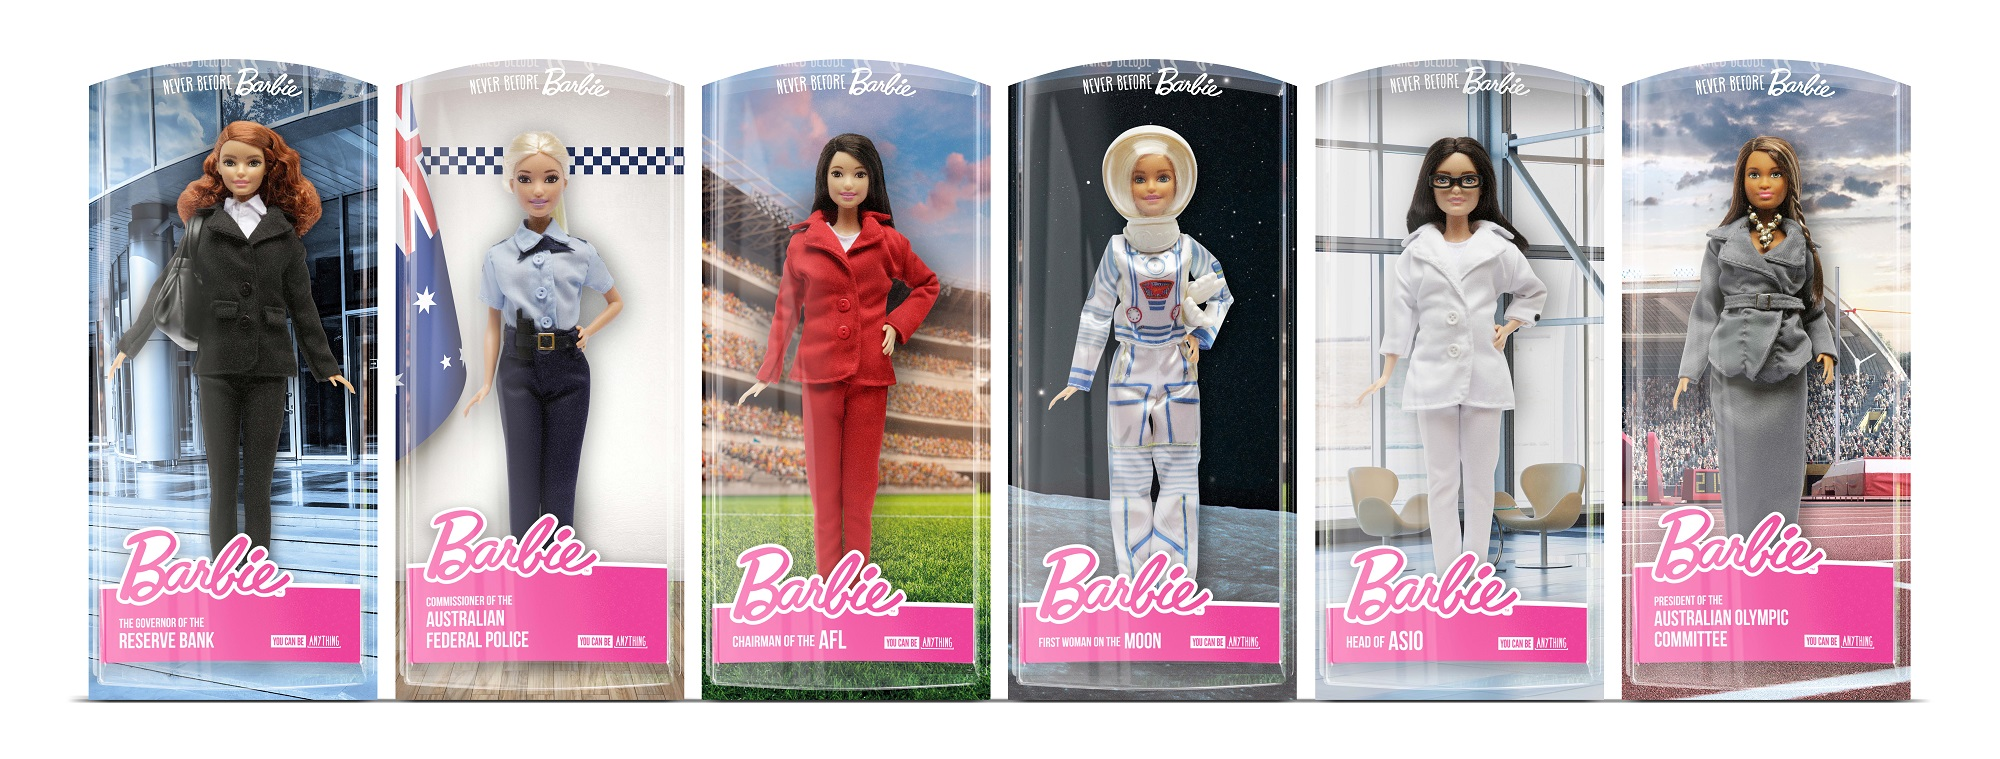 Never Before Barbie range